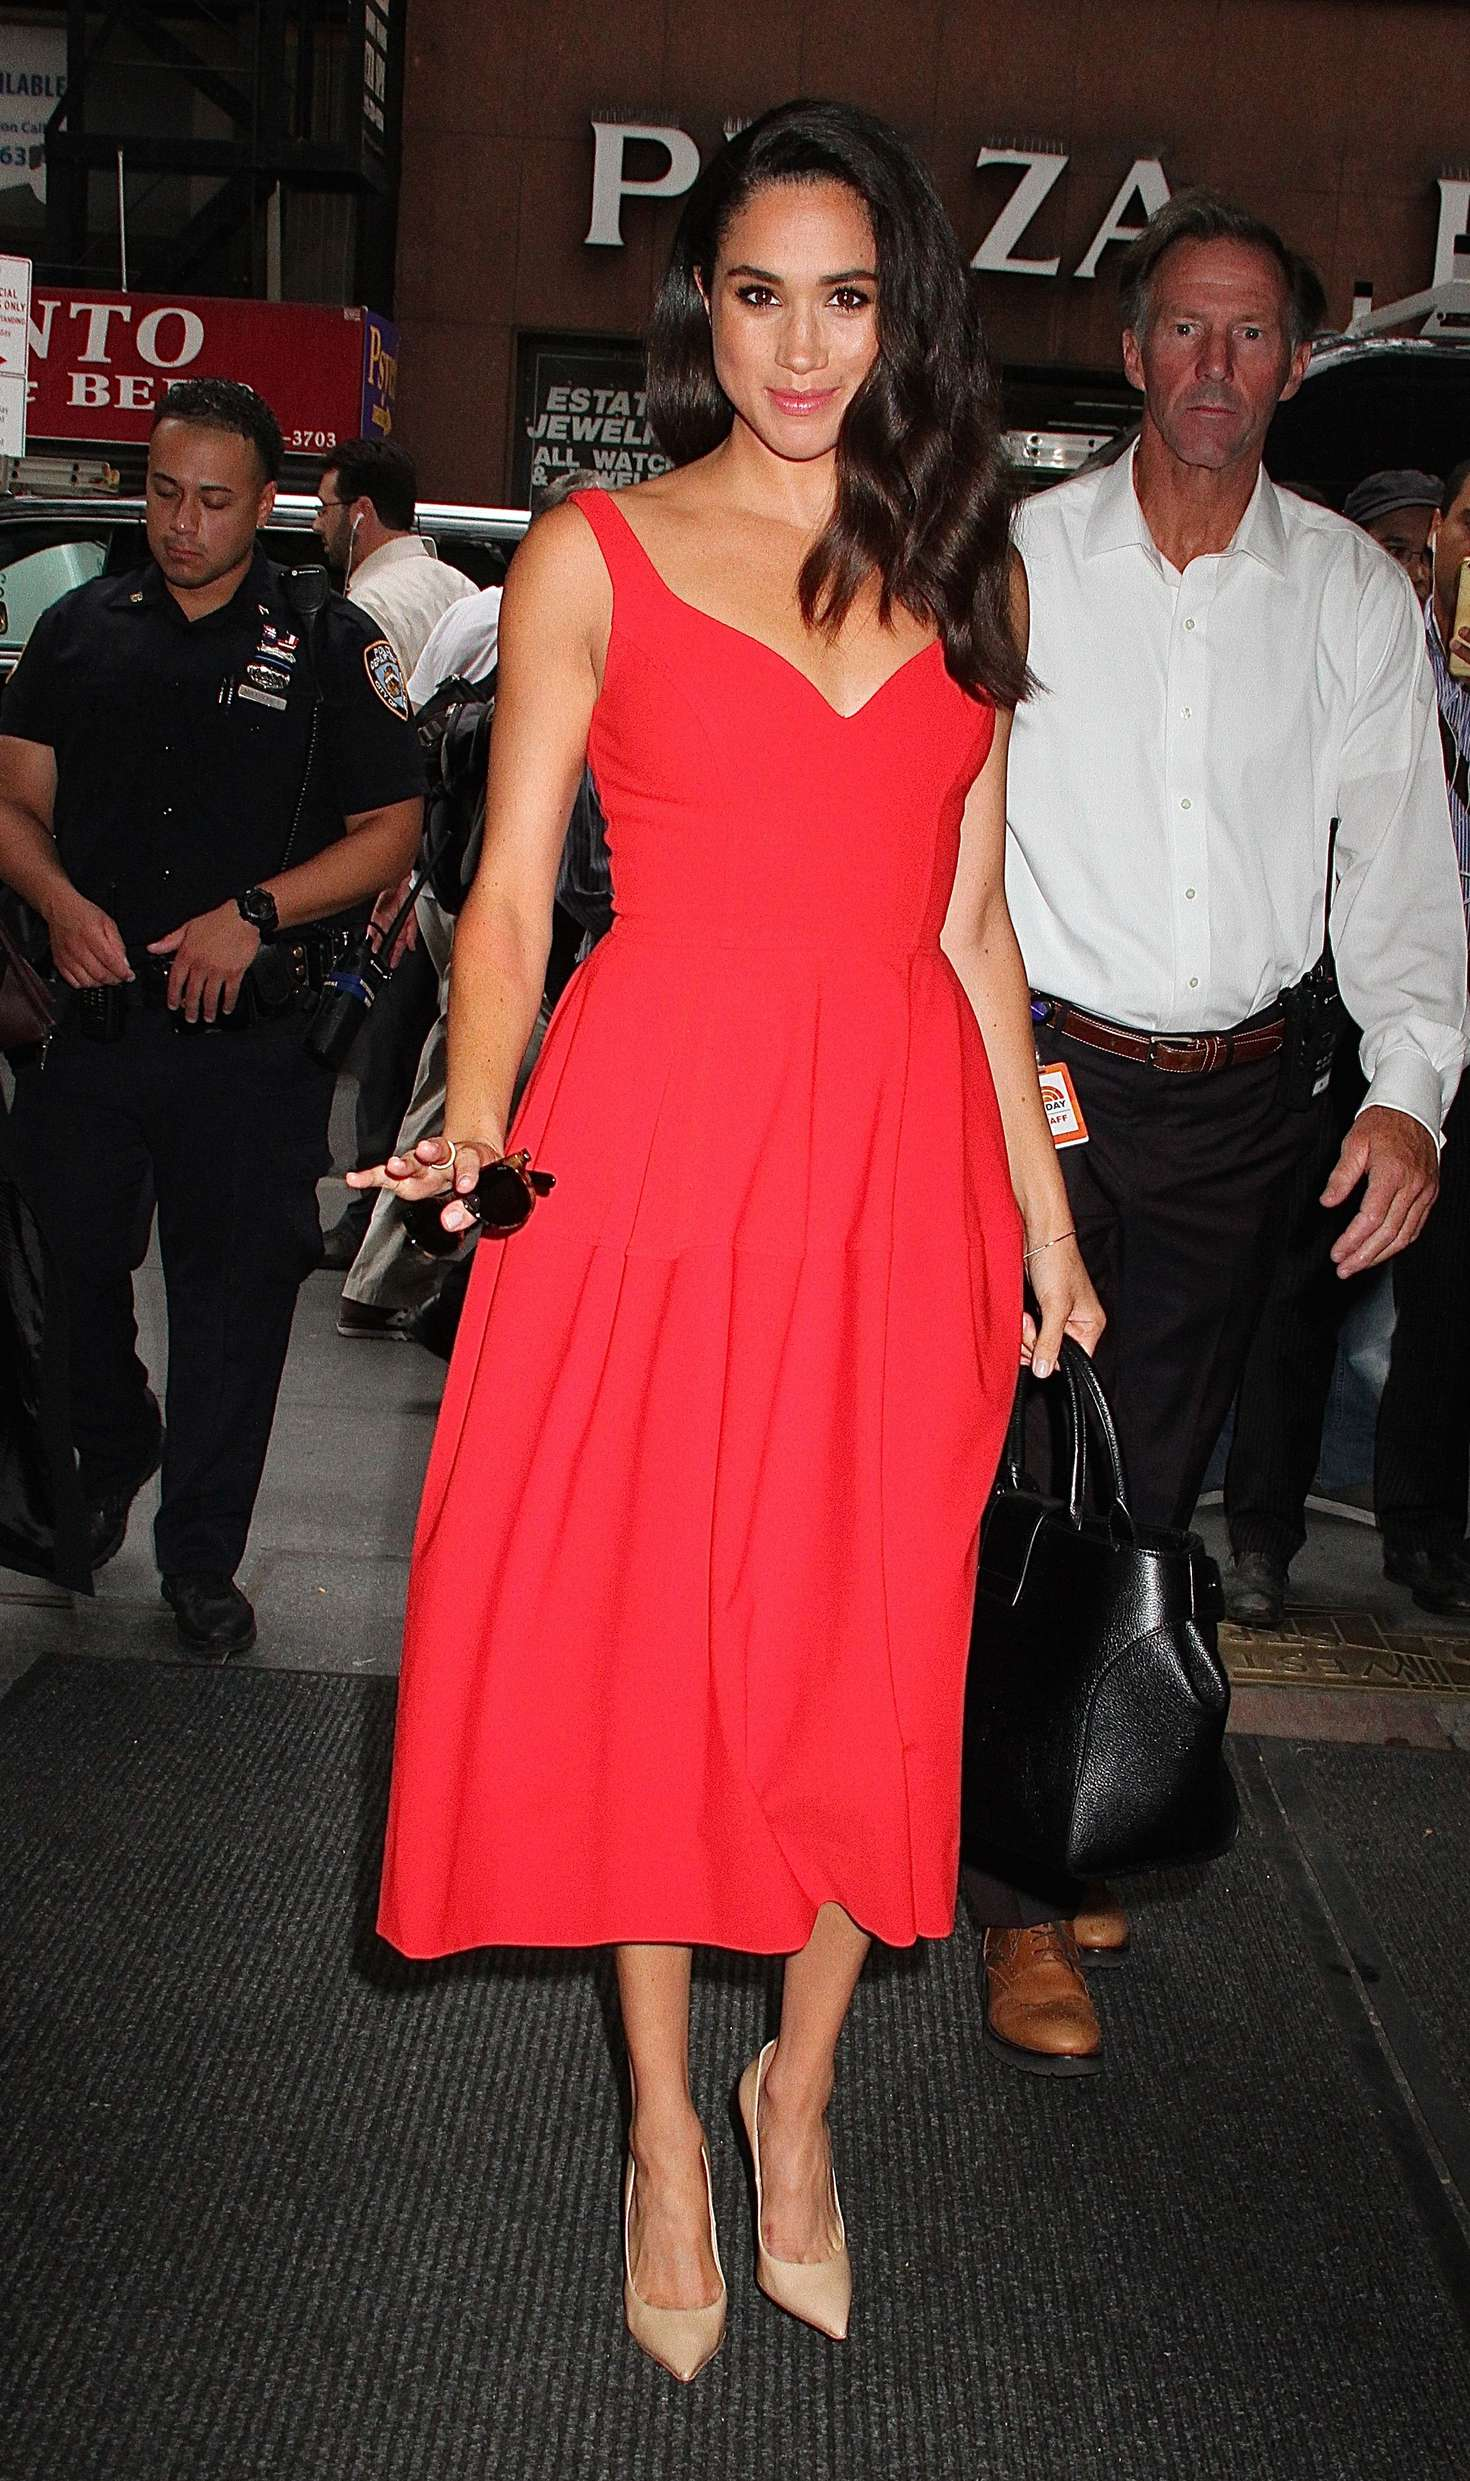 Meghan Markle Arrives at The Today Show -03 - GotCeleb